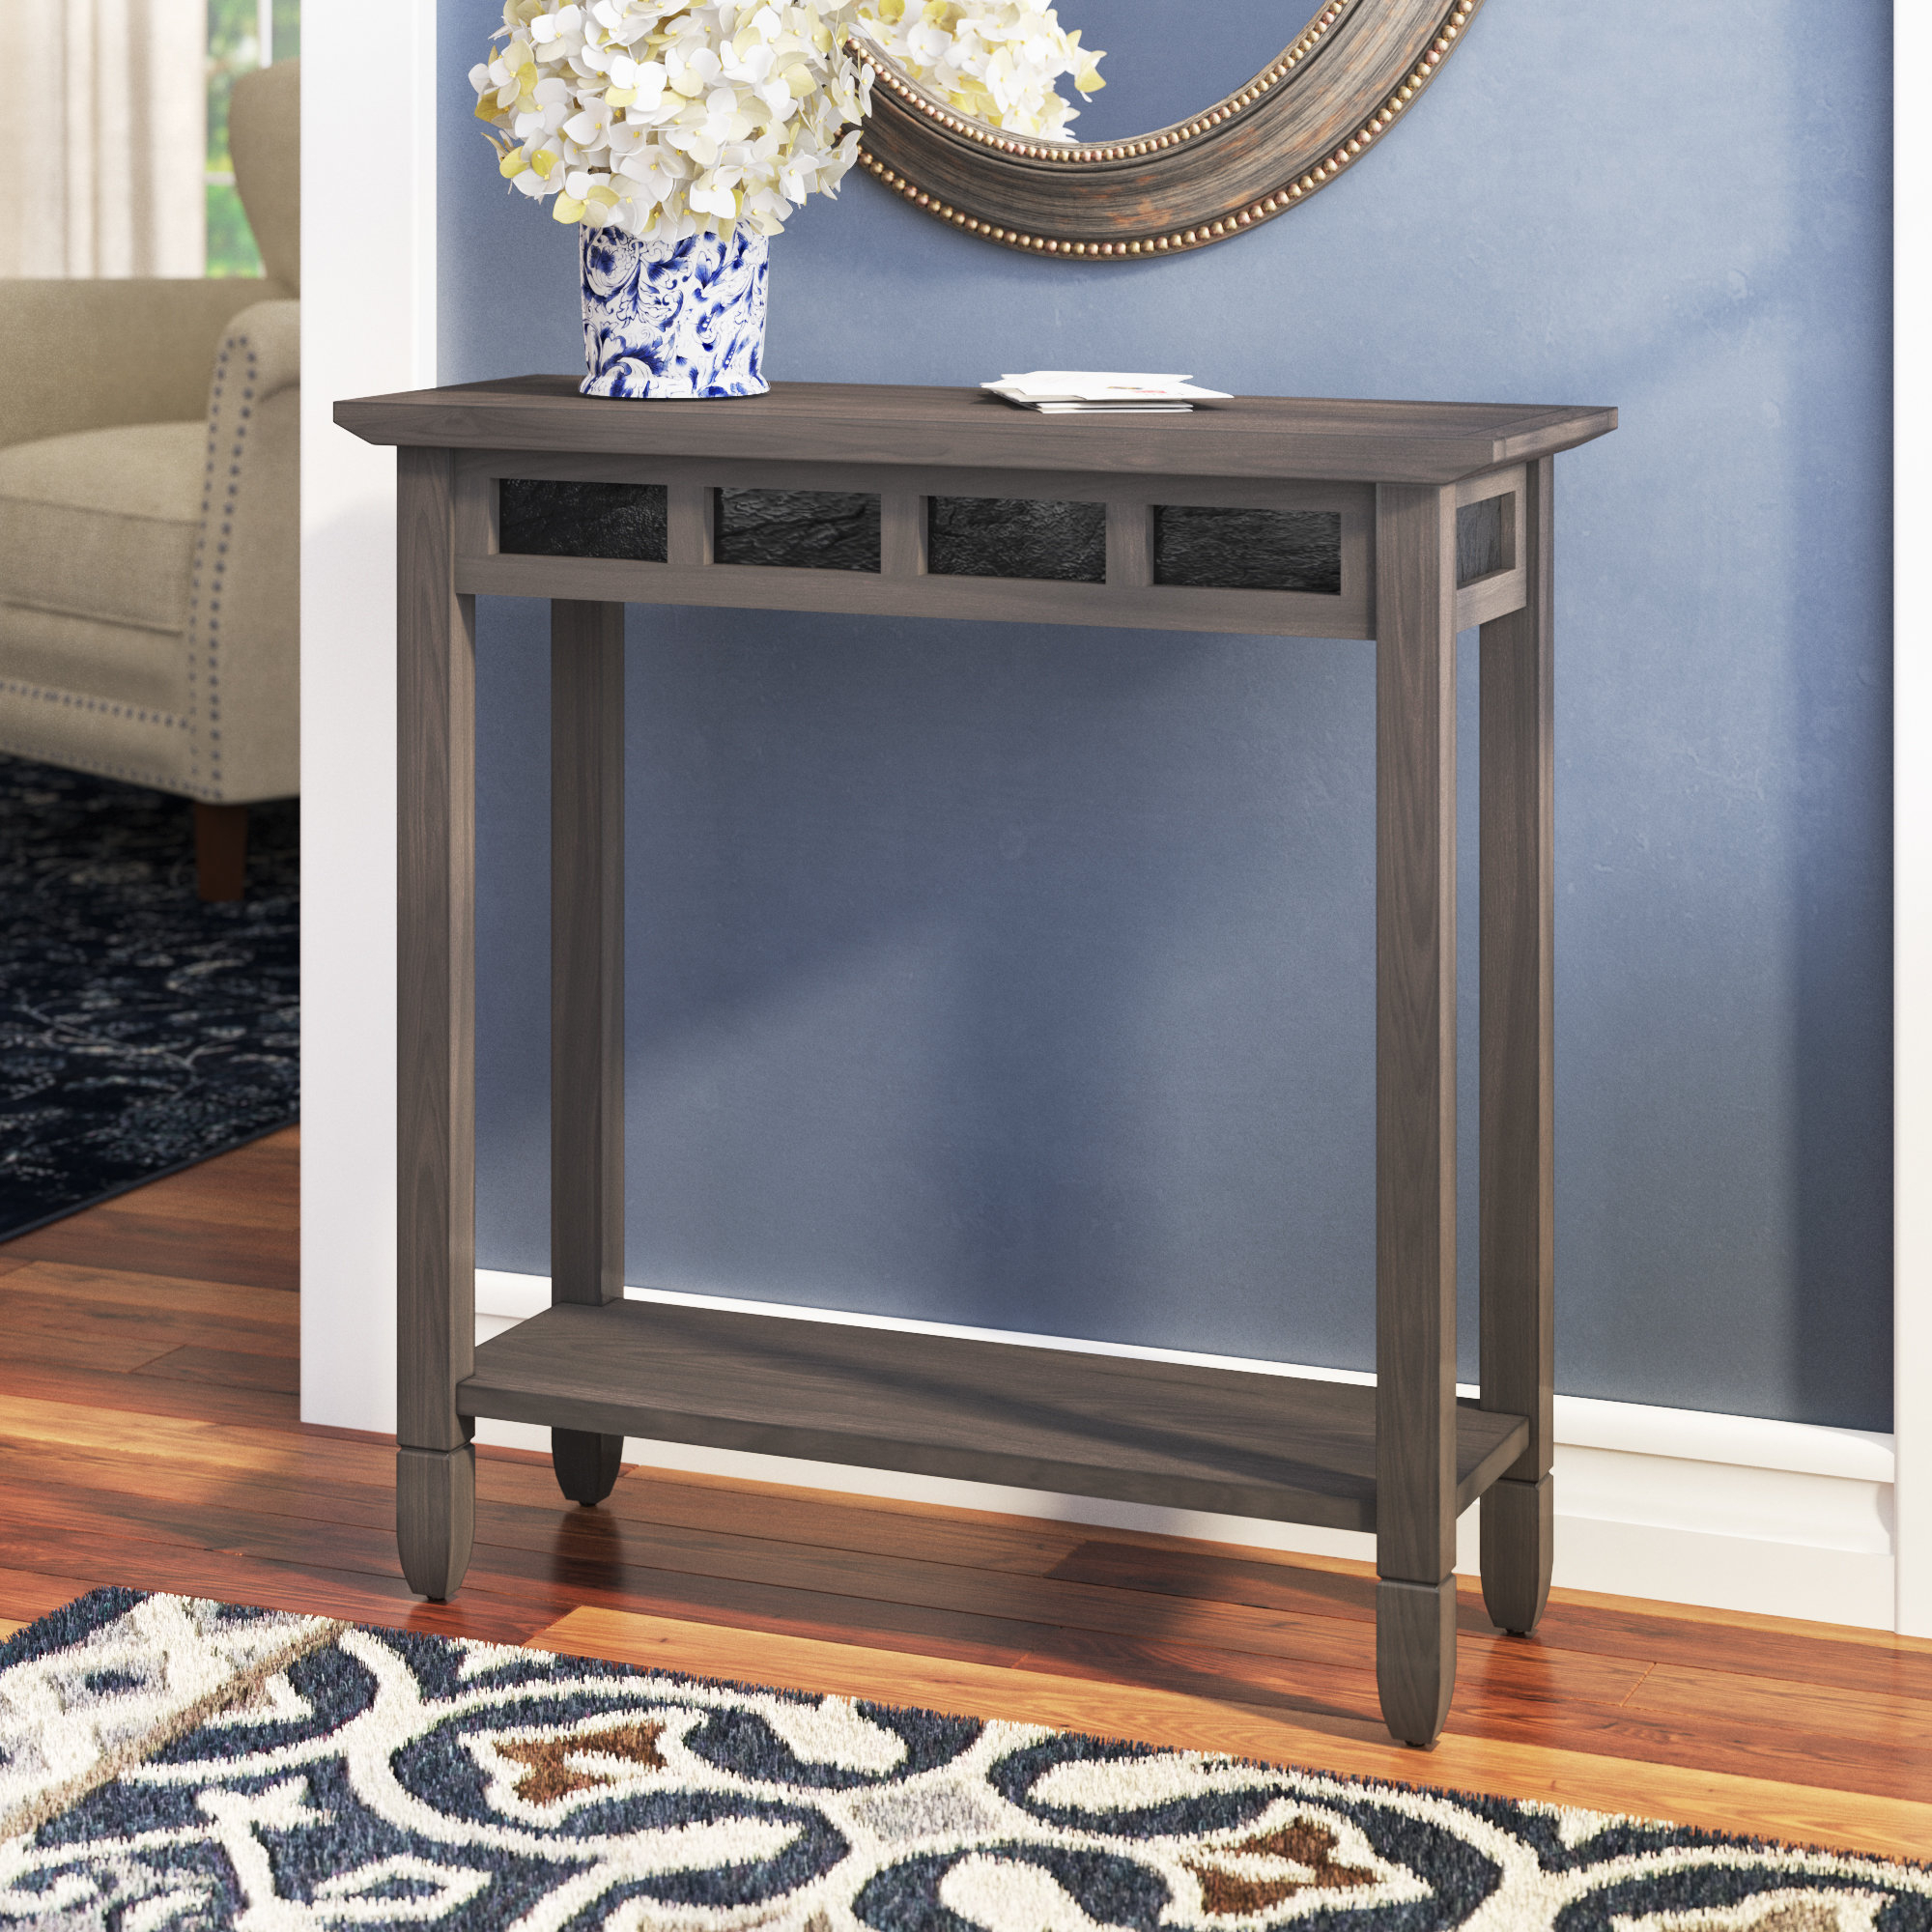 Narrow Console Tables You'll Love | Wayfair With Natural Cane Media Console Tables (Photo 20 of 30)